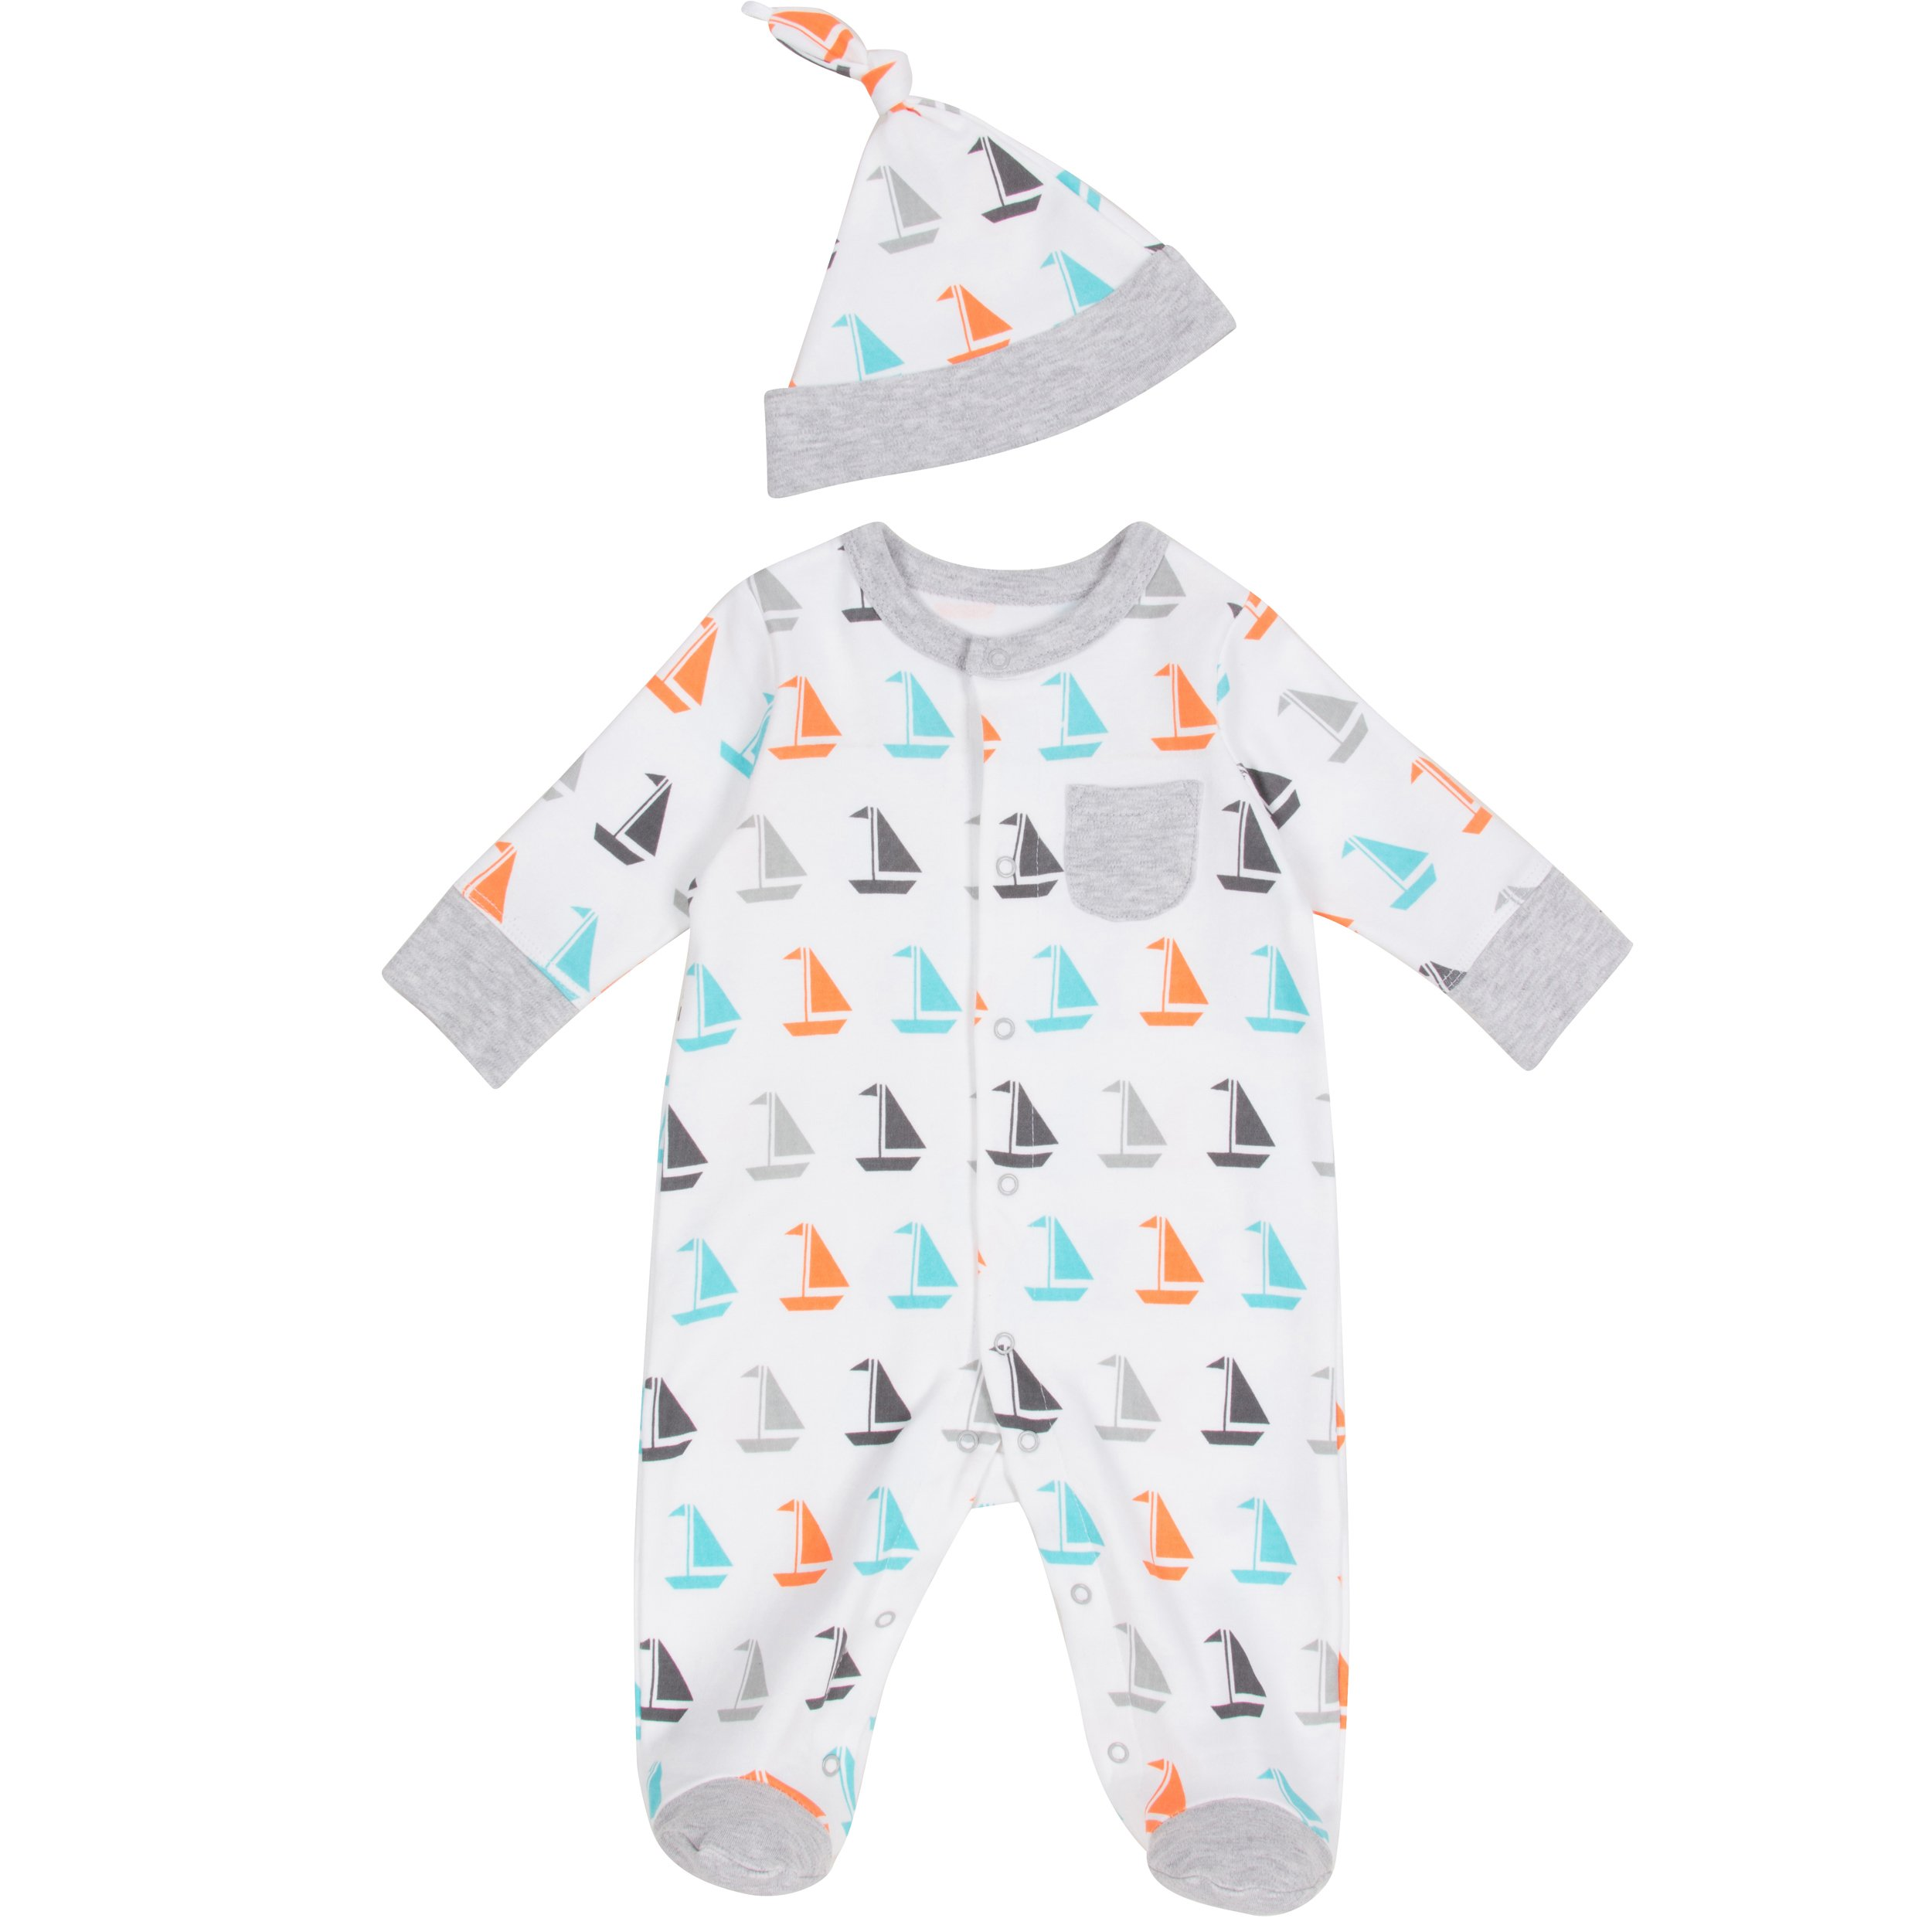 Offspring-Baby Boy Footie (0-9 mos) -Sailboat